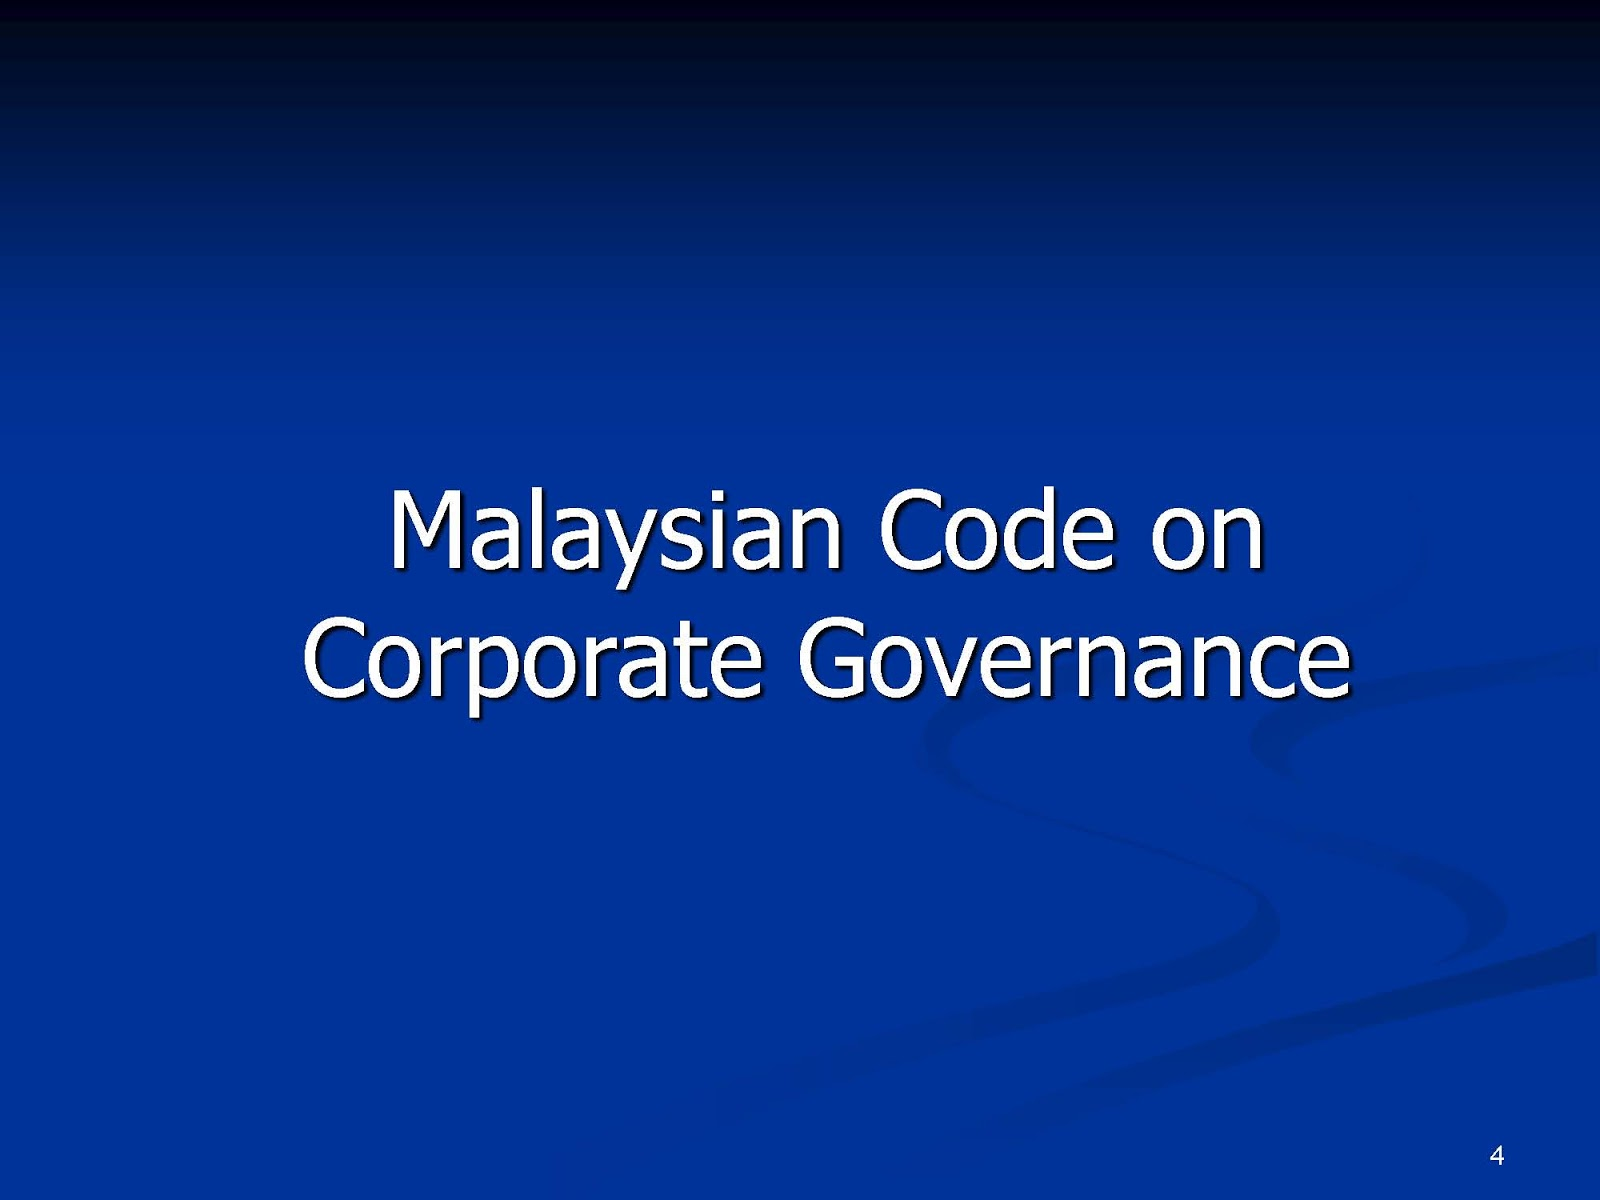 corporate and governance in malaysia 8th corporate governance asia recognition awards 2012 the awardee must have must a previous publicly-acclaimed track record for corporate governance (this can be in.